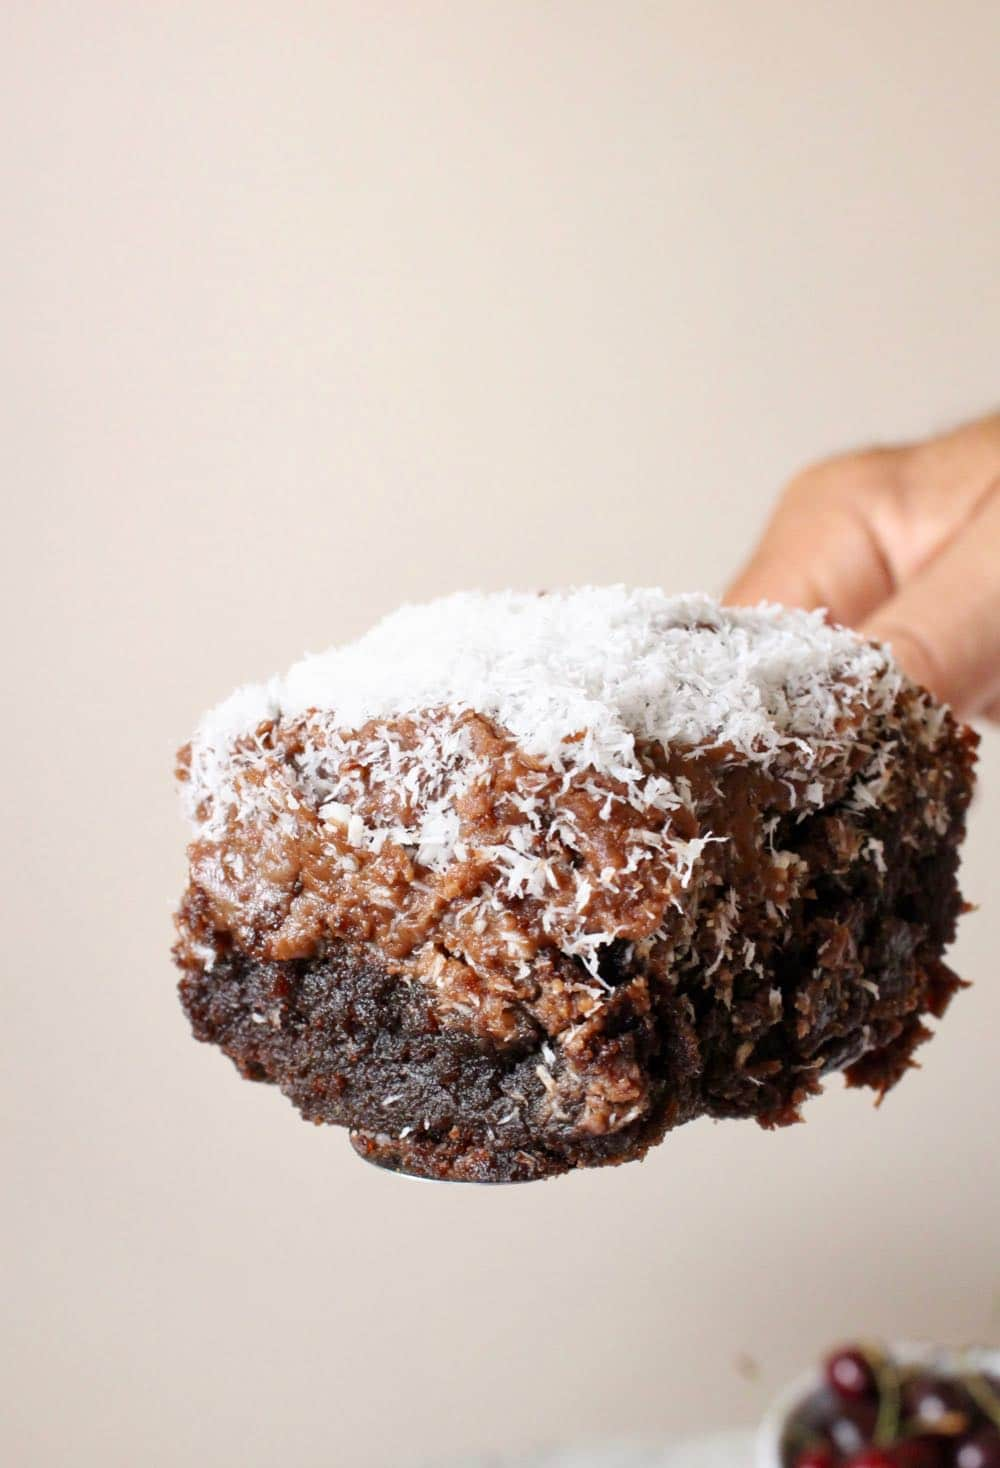 slice of chocolate sheet cake with frosting and coconut